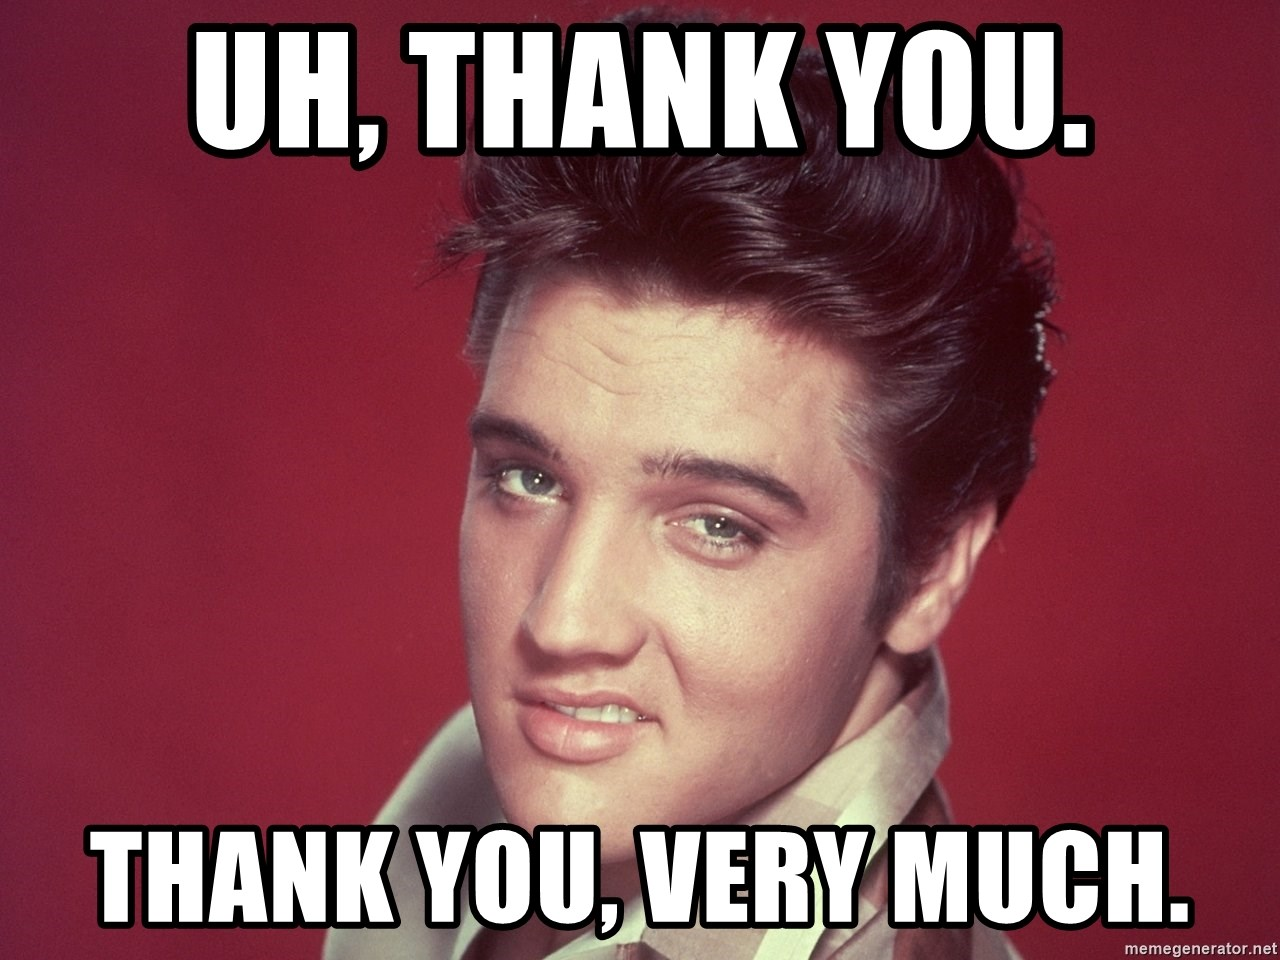 53795919 uh, thank you thank you, very much elvis looking meme generator